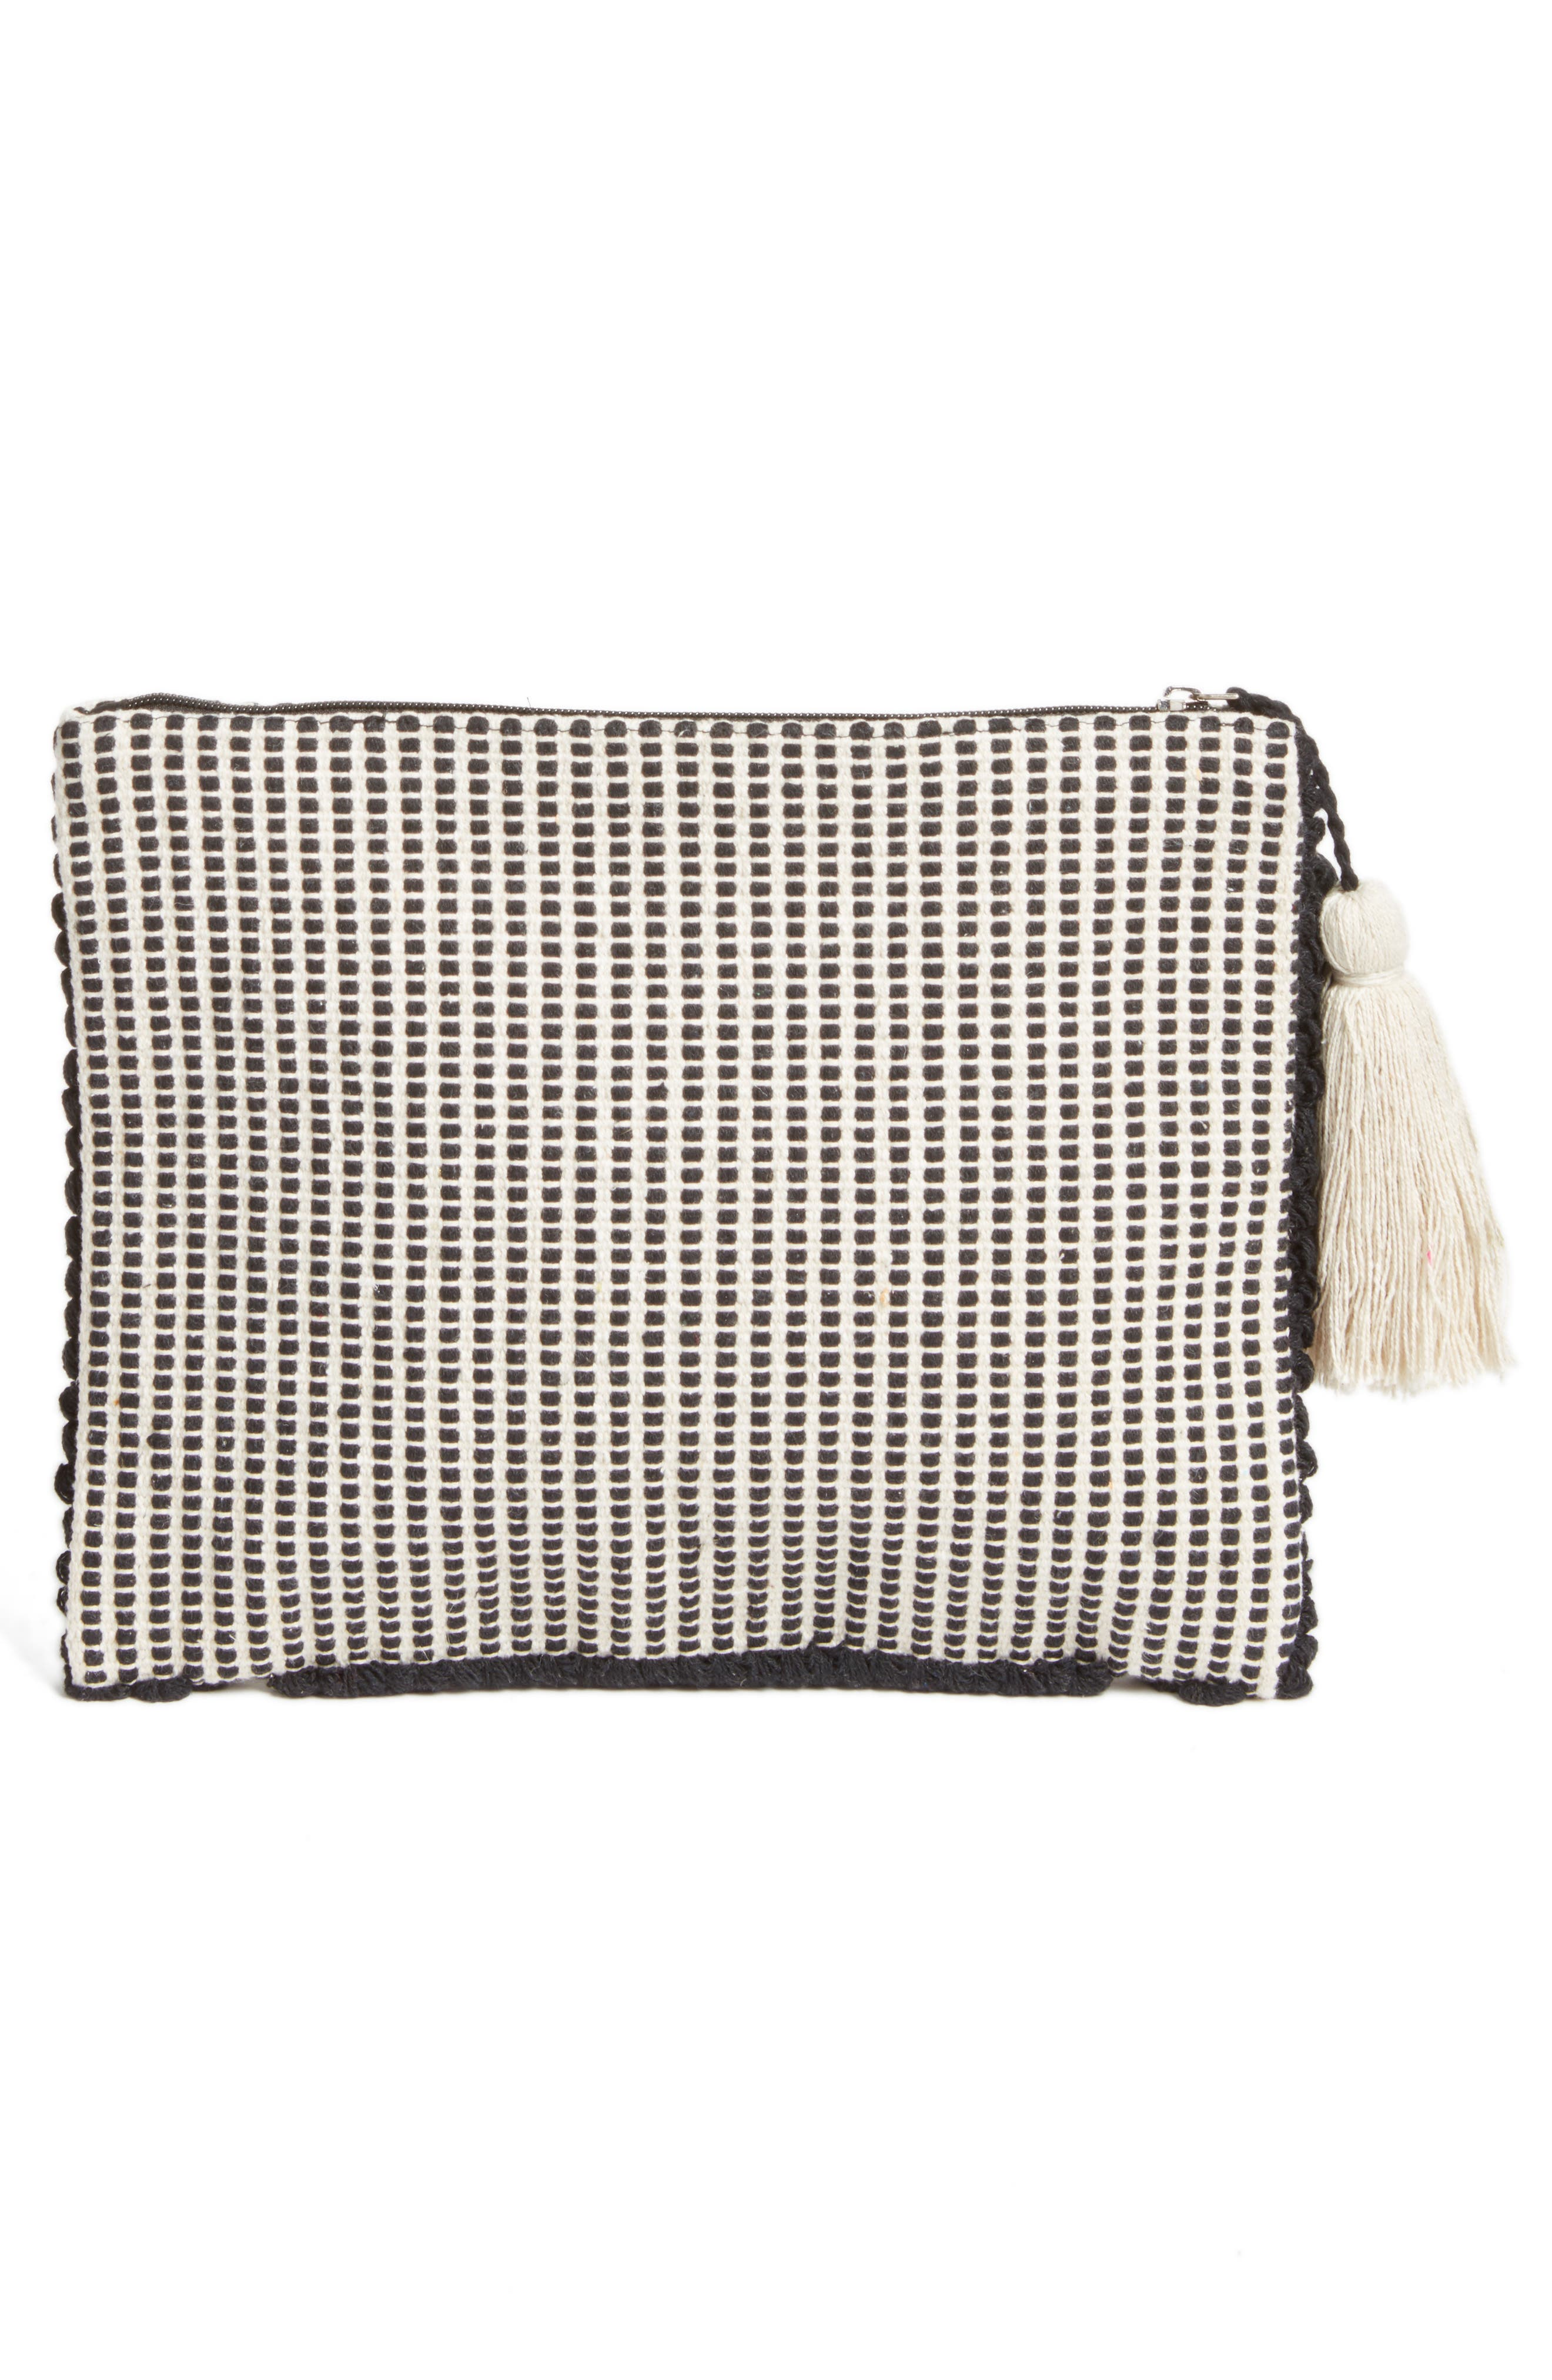 Alternate Image 4  - Sole Society Palisades Tasseled Woven Clutch